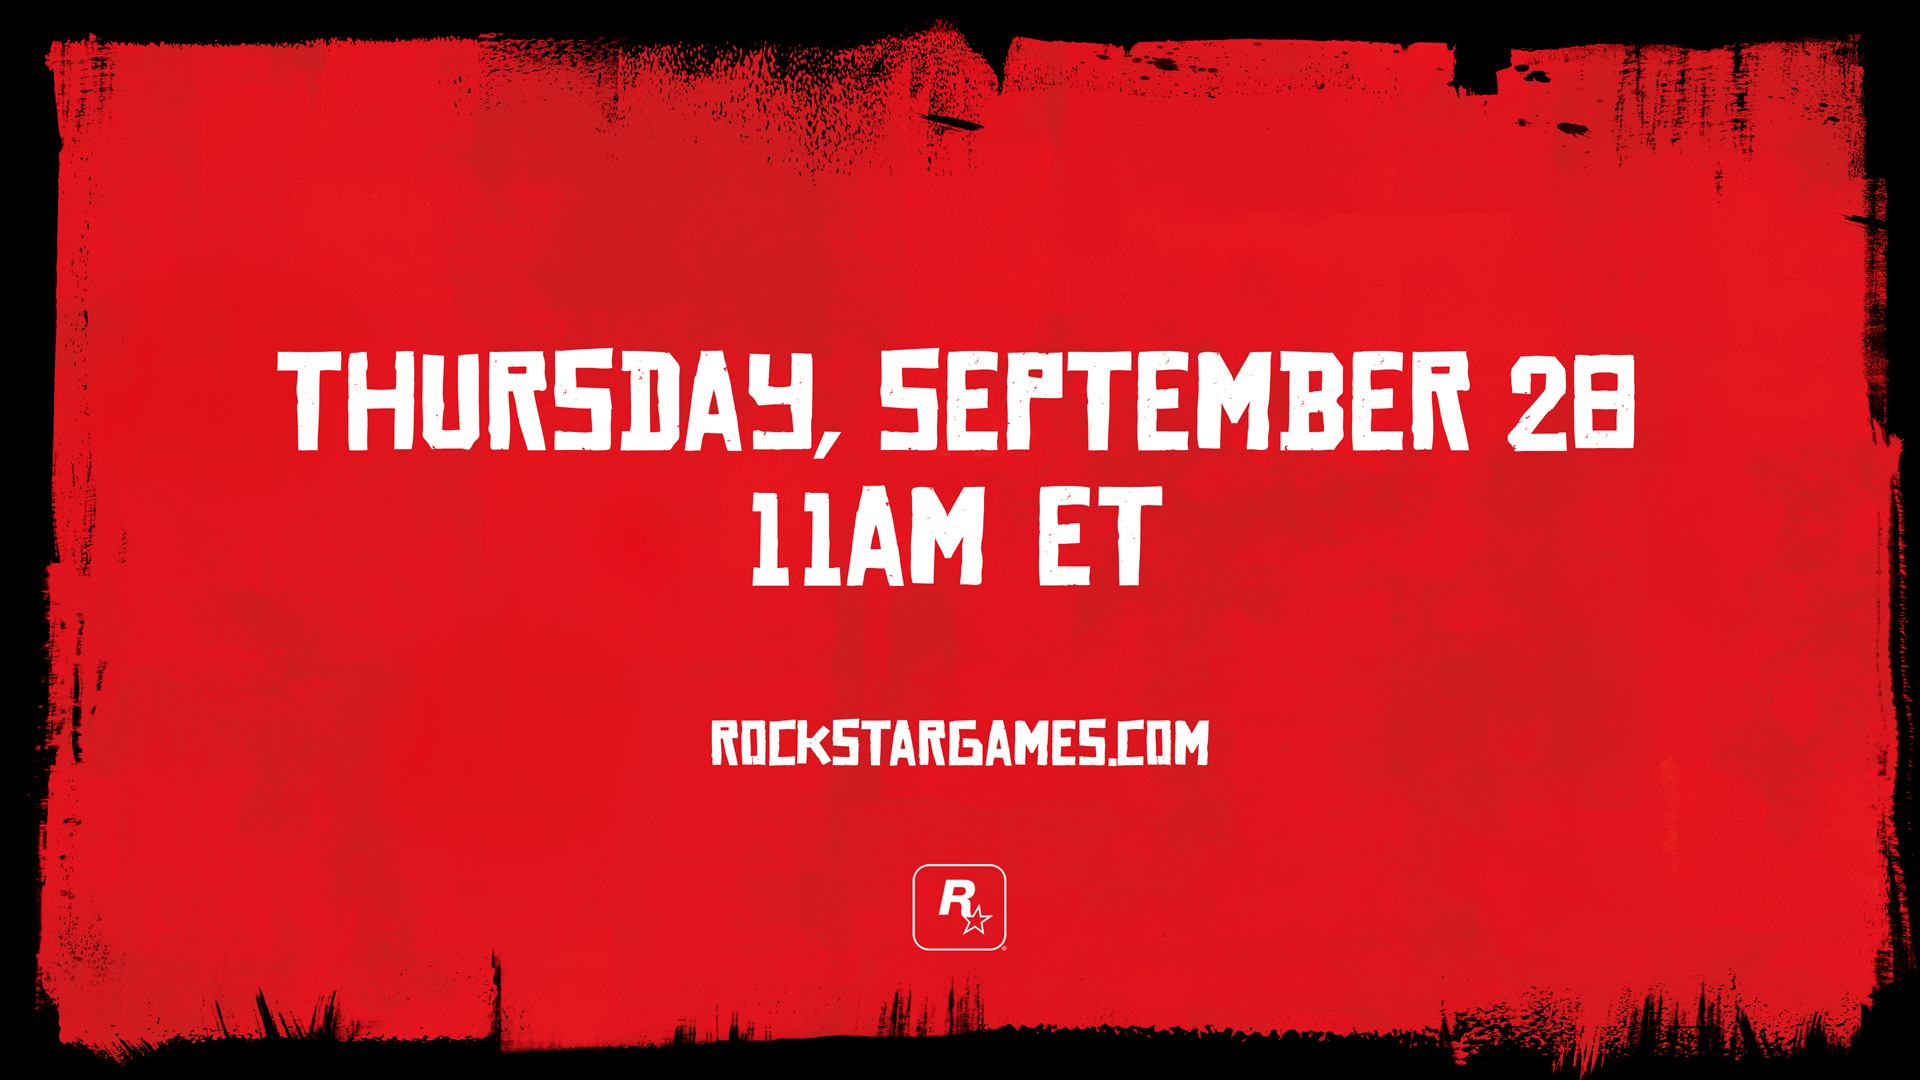 Rockstar Games to Make Red Dead Redemption 2 Announcement Next Week